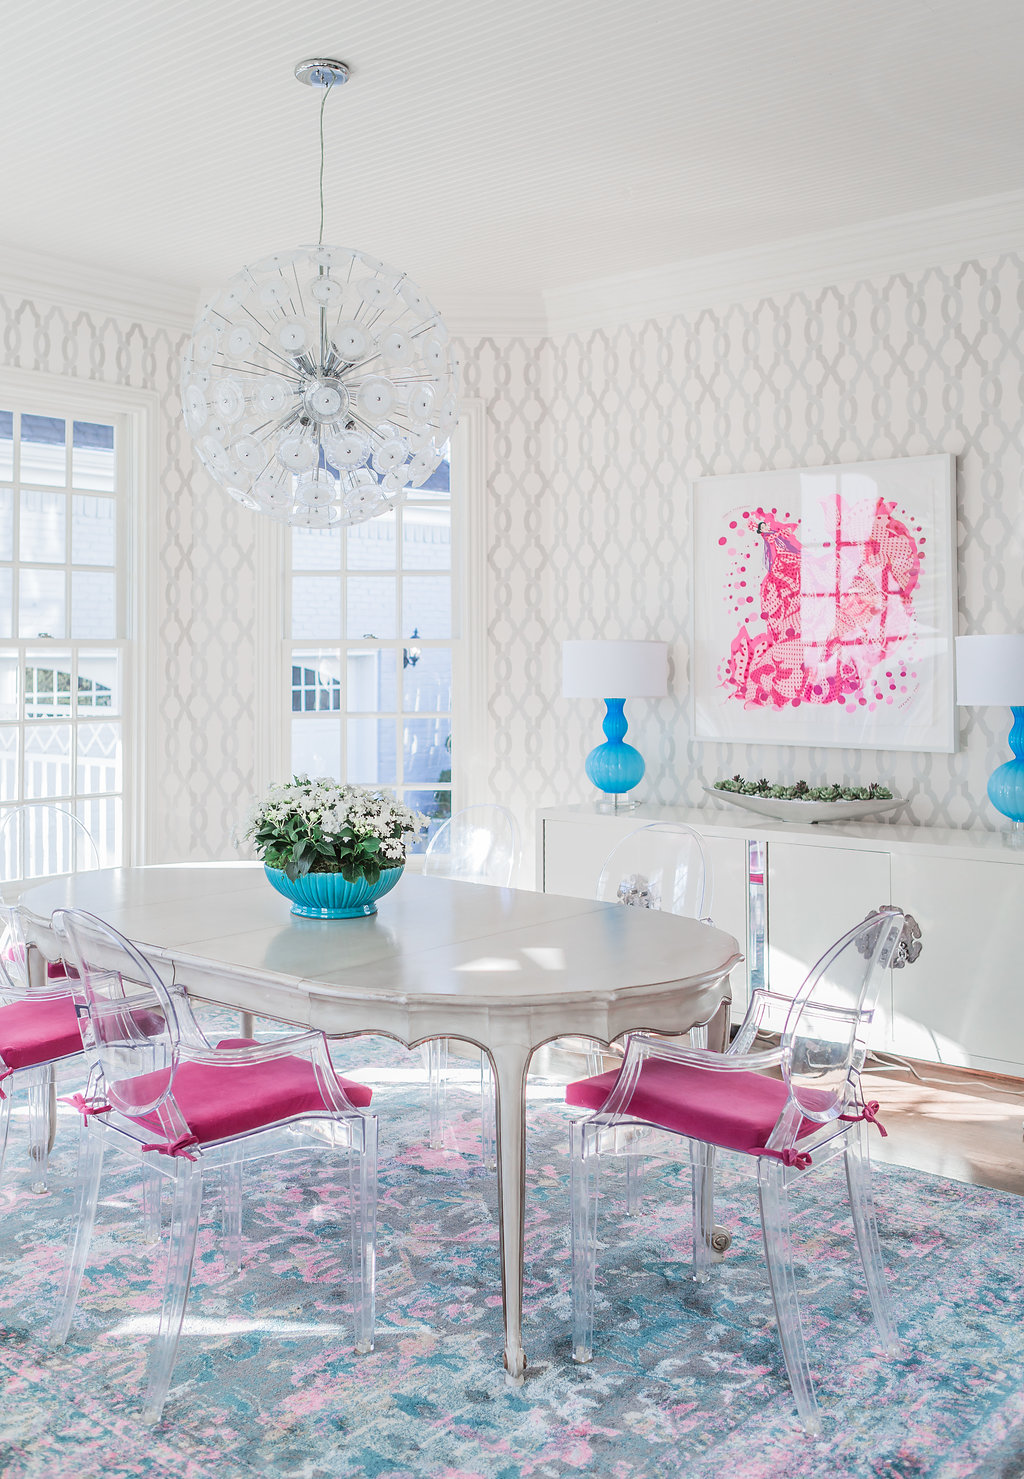 Bright White Breakfast Room with Pops of Pink and Turquoise